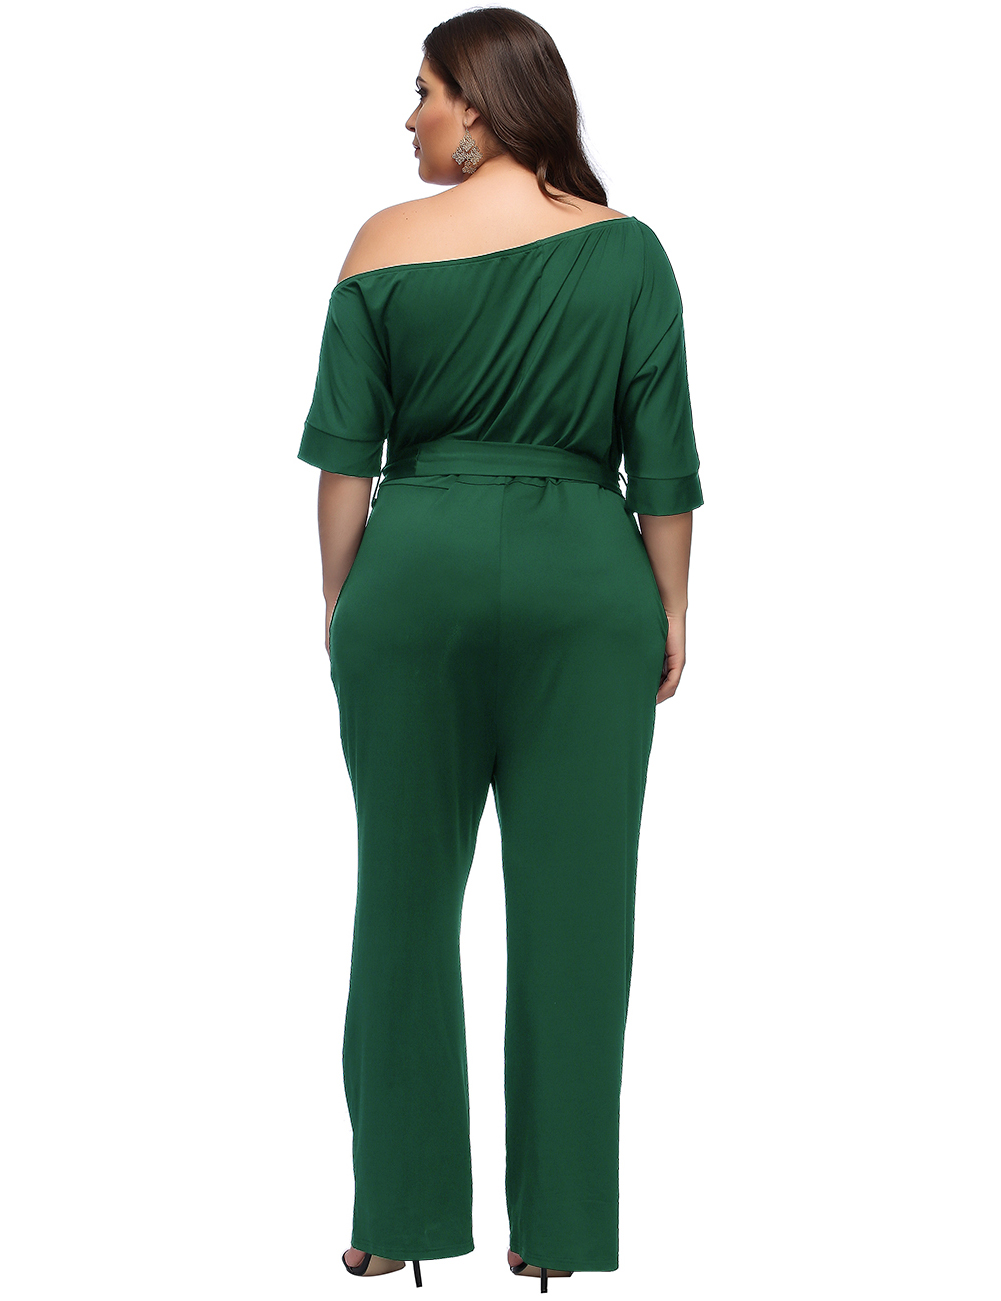 //cdn.affectcloud.com/hexinfashion/upload/imgs/Dress/Jumpsuit_Romper/H180146-GN5/H180146-GN5-201911055dc1383025a0b.jpg